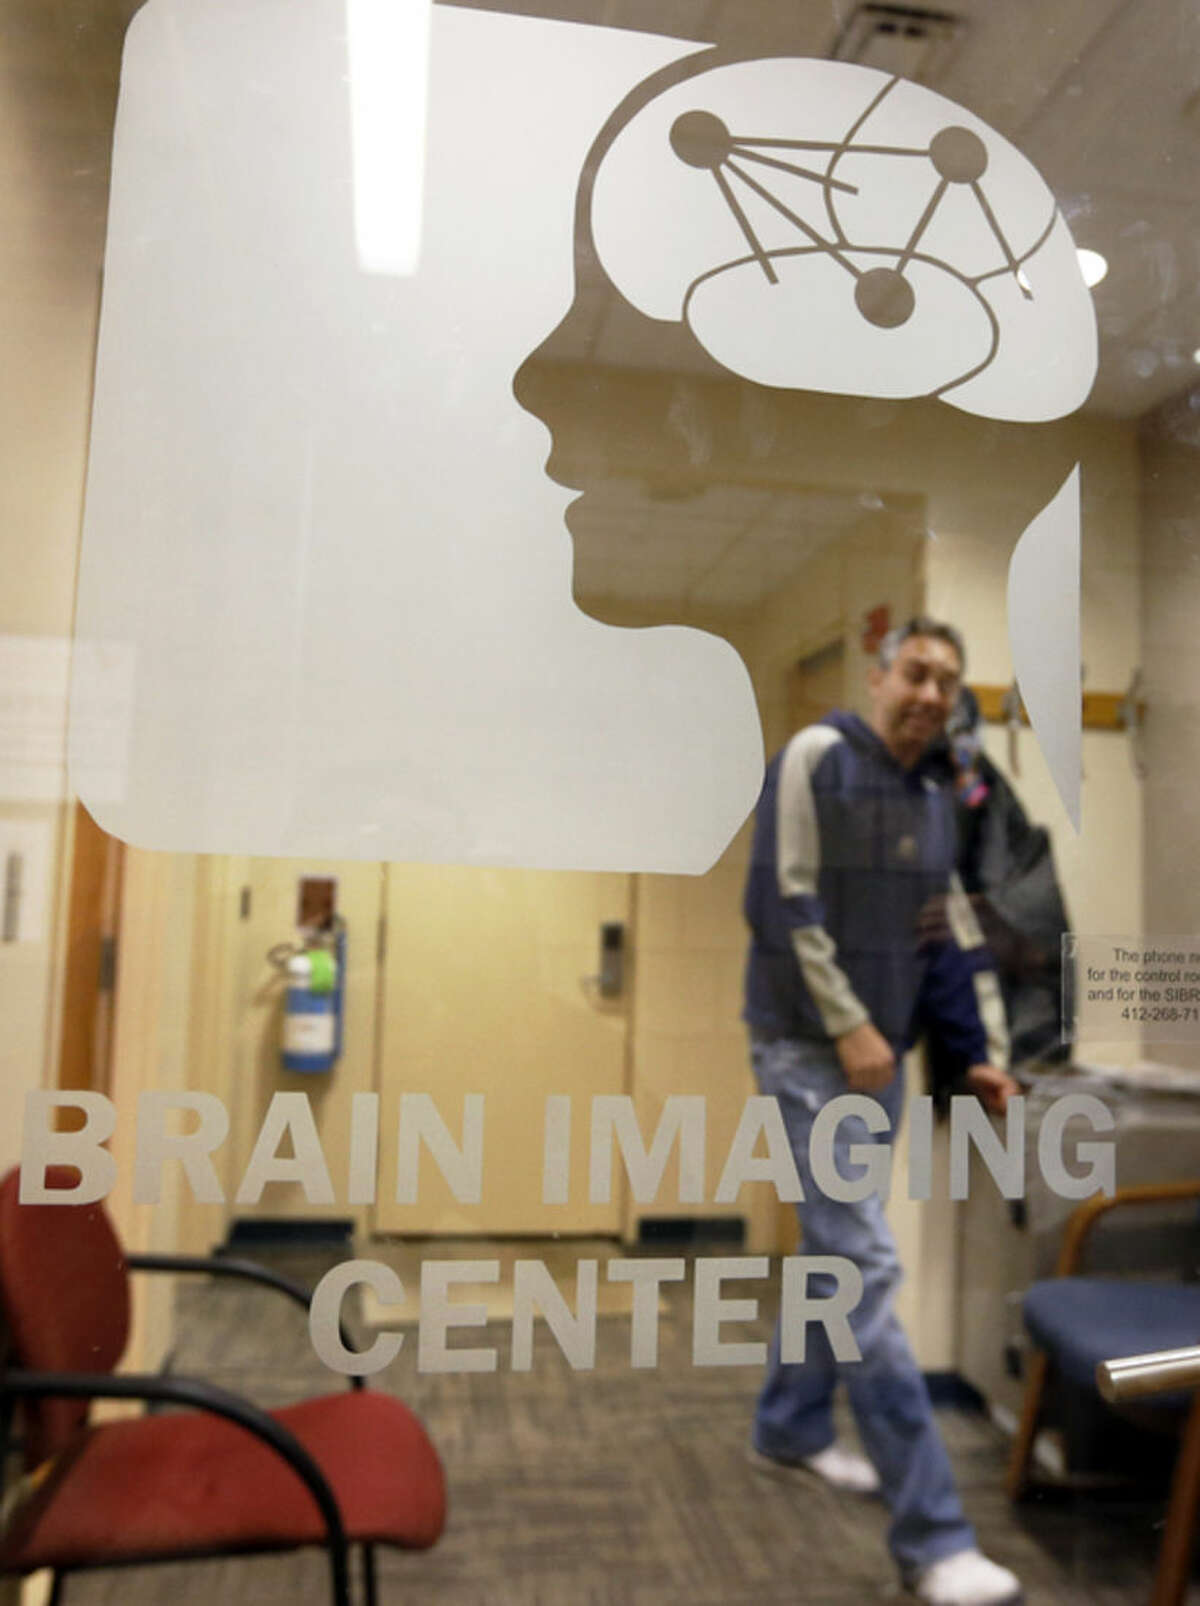 Scott Kurdilla, a medical research technologist at Carnegie Mellon University, waits for a volunteer for a brain scan experiment on campus in Pittsburgh on Wednesday Nov. 26, 2014. The brain-scanning MRI machine at the center was used in a recent experiment where each word of a chapter of